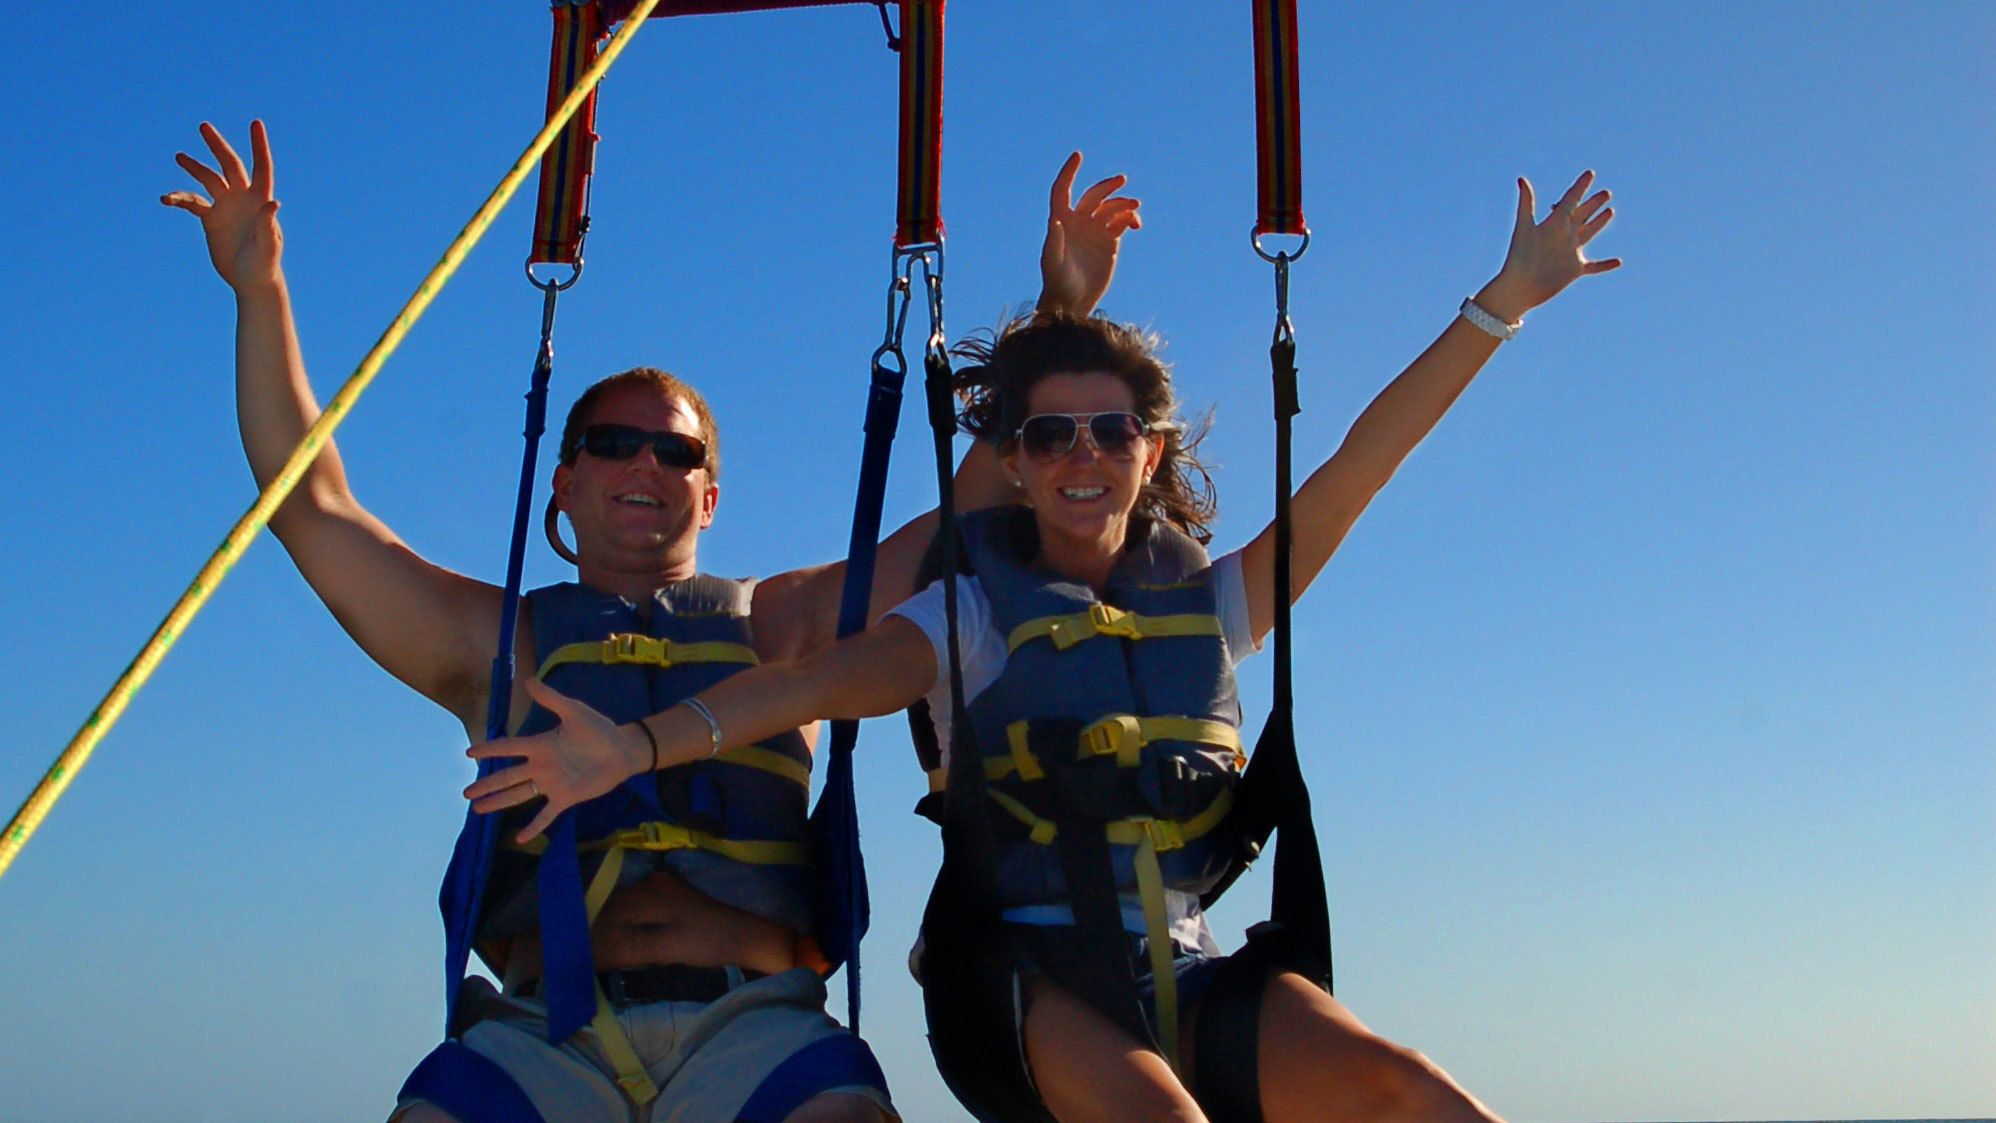 Couple parasailing in the sky at Key West